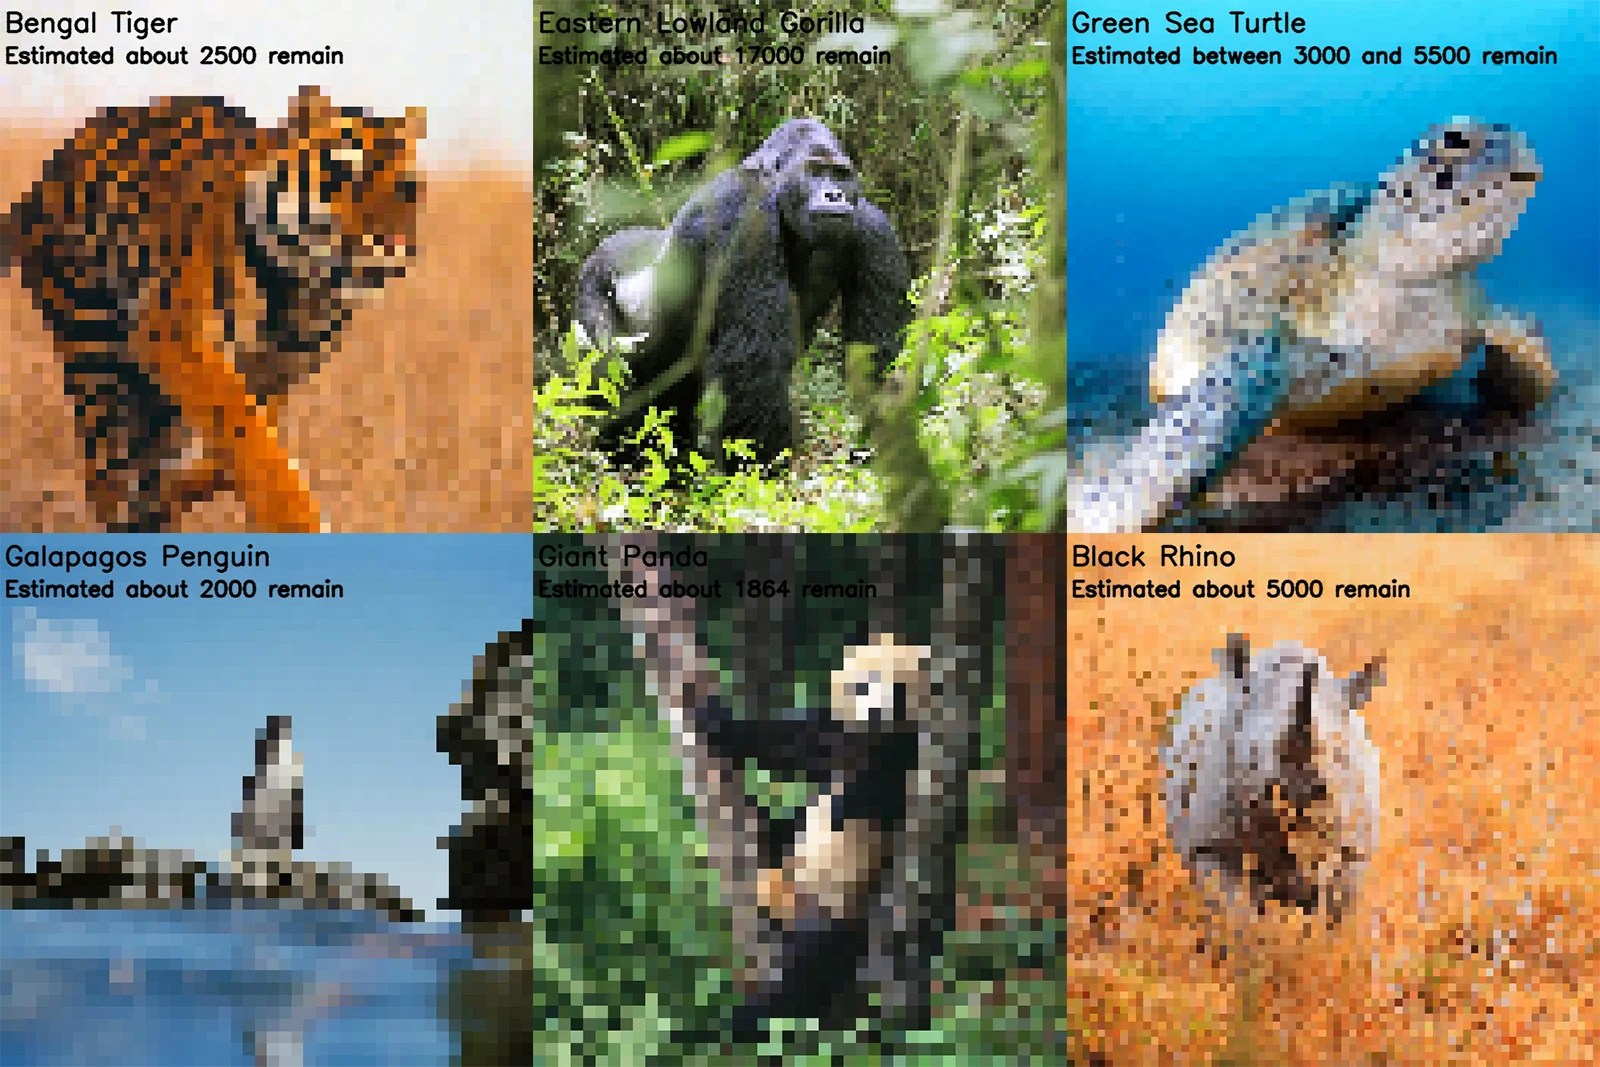 Photos Of Endangered Species Where Every Pixel Represents